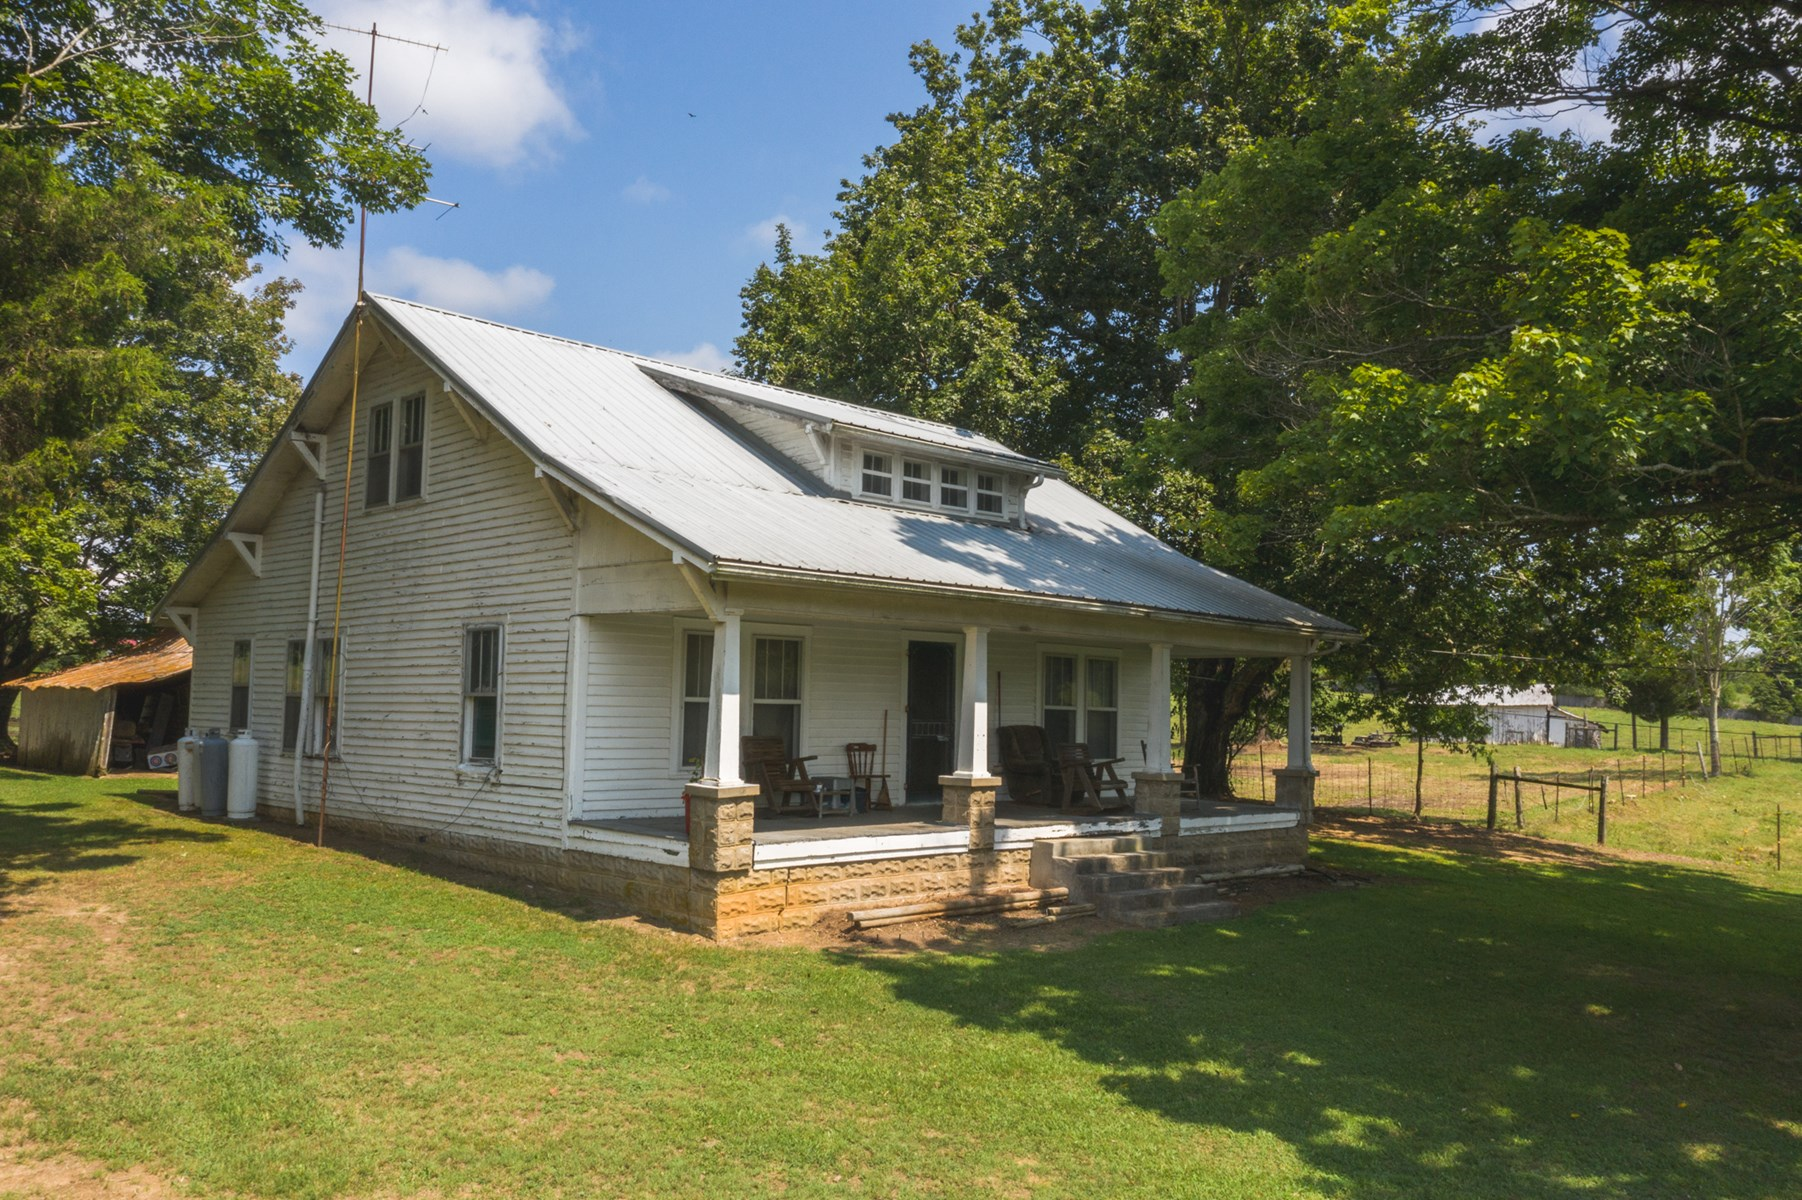 2 BR, 1 BA Country Home in Hawkins CO, TN